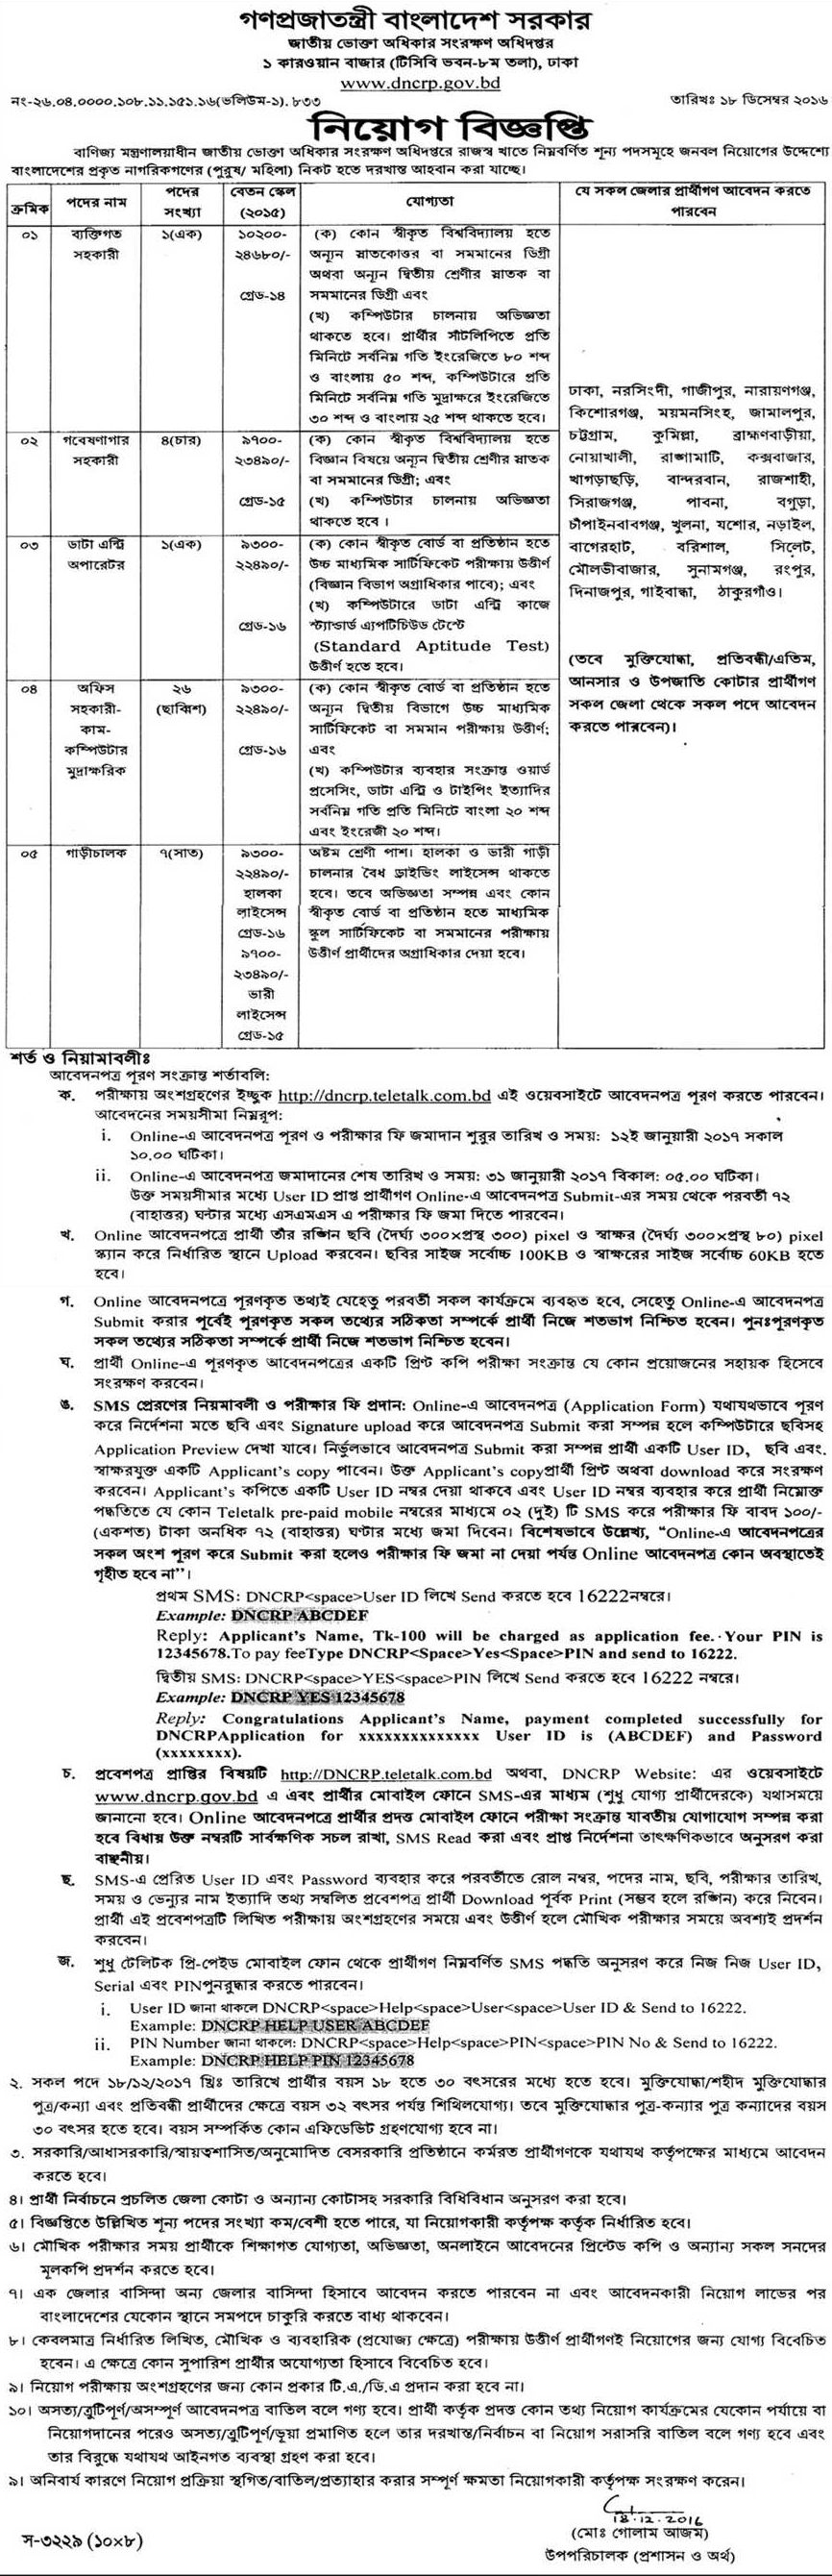 Department of National Consumer Rights Protection Job Circular 2017